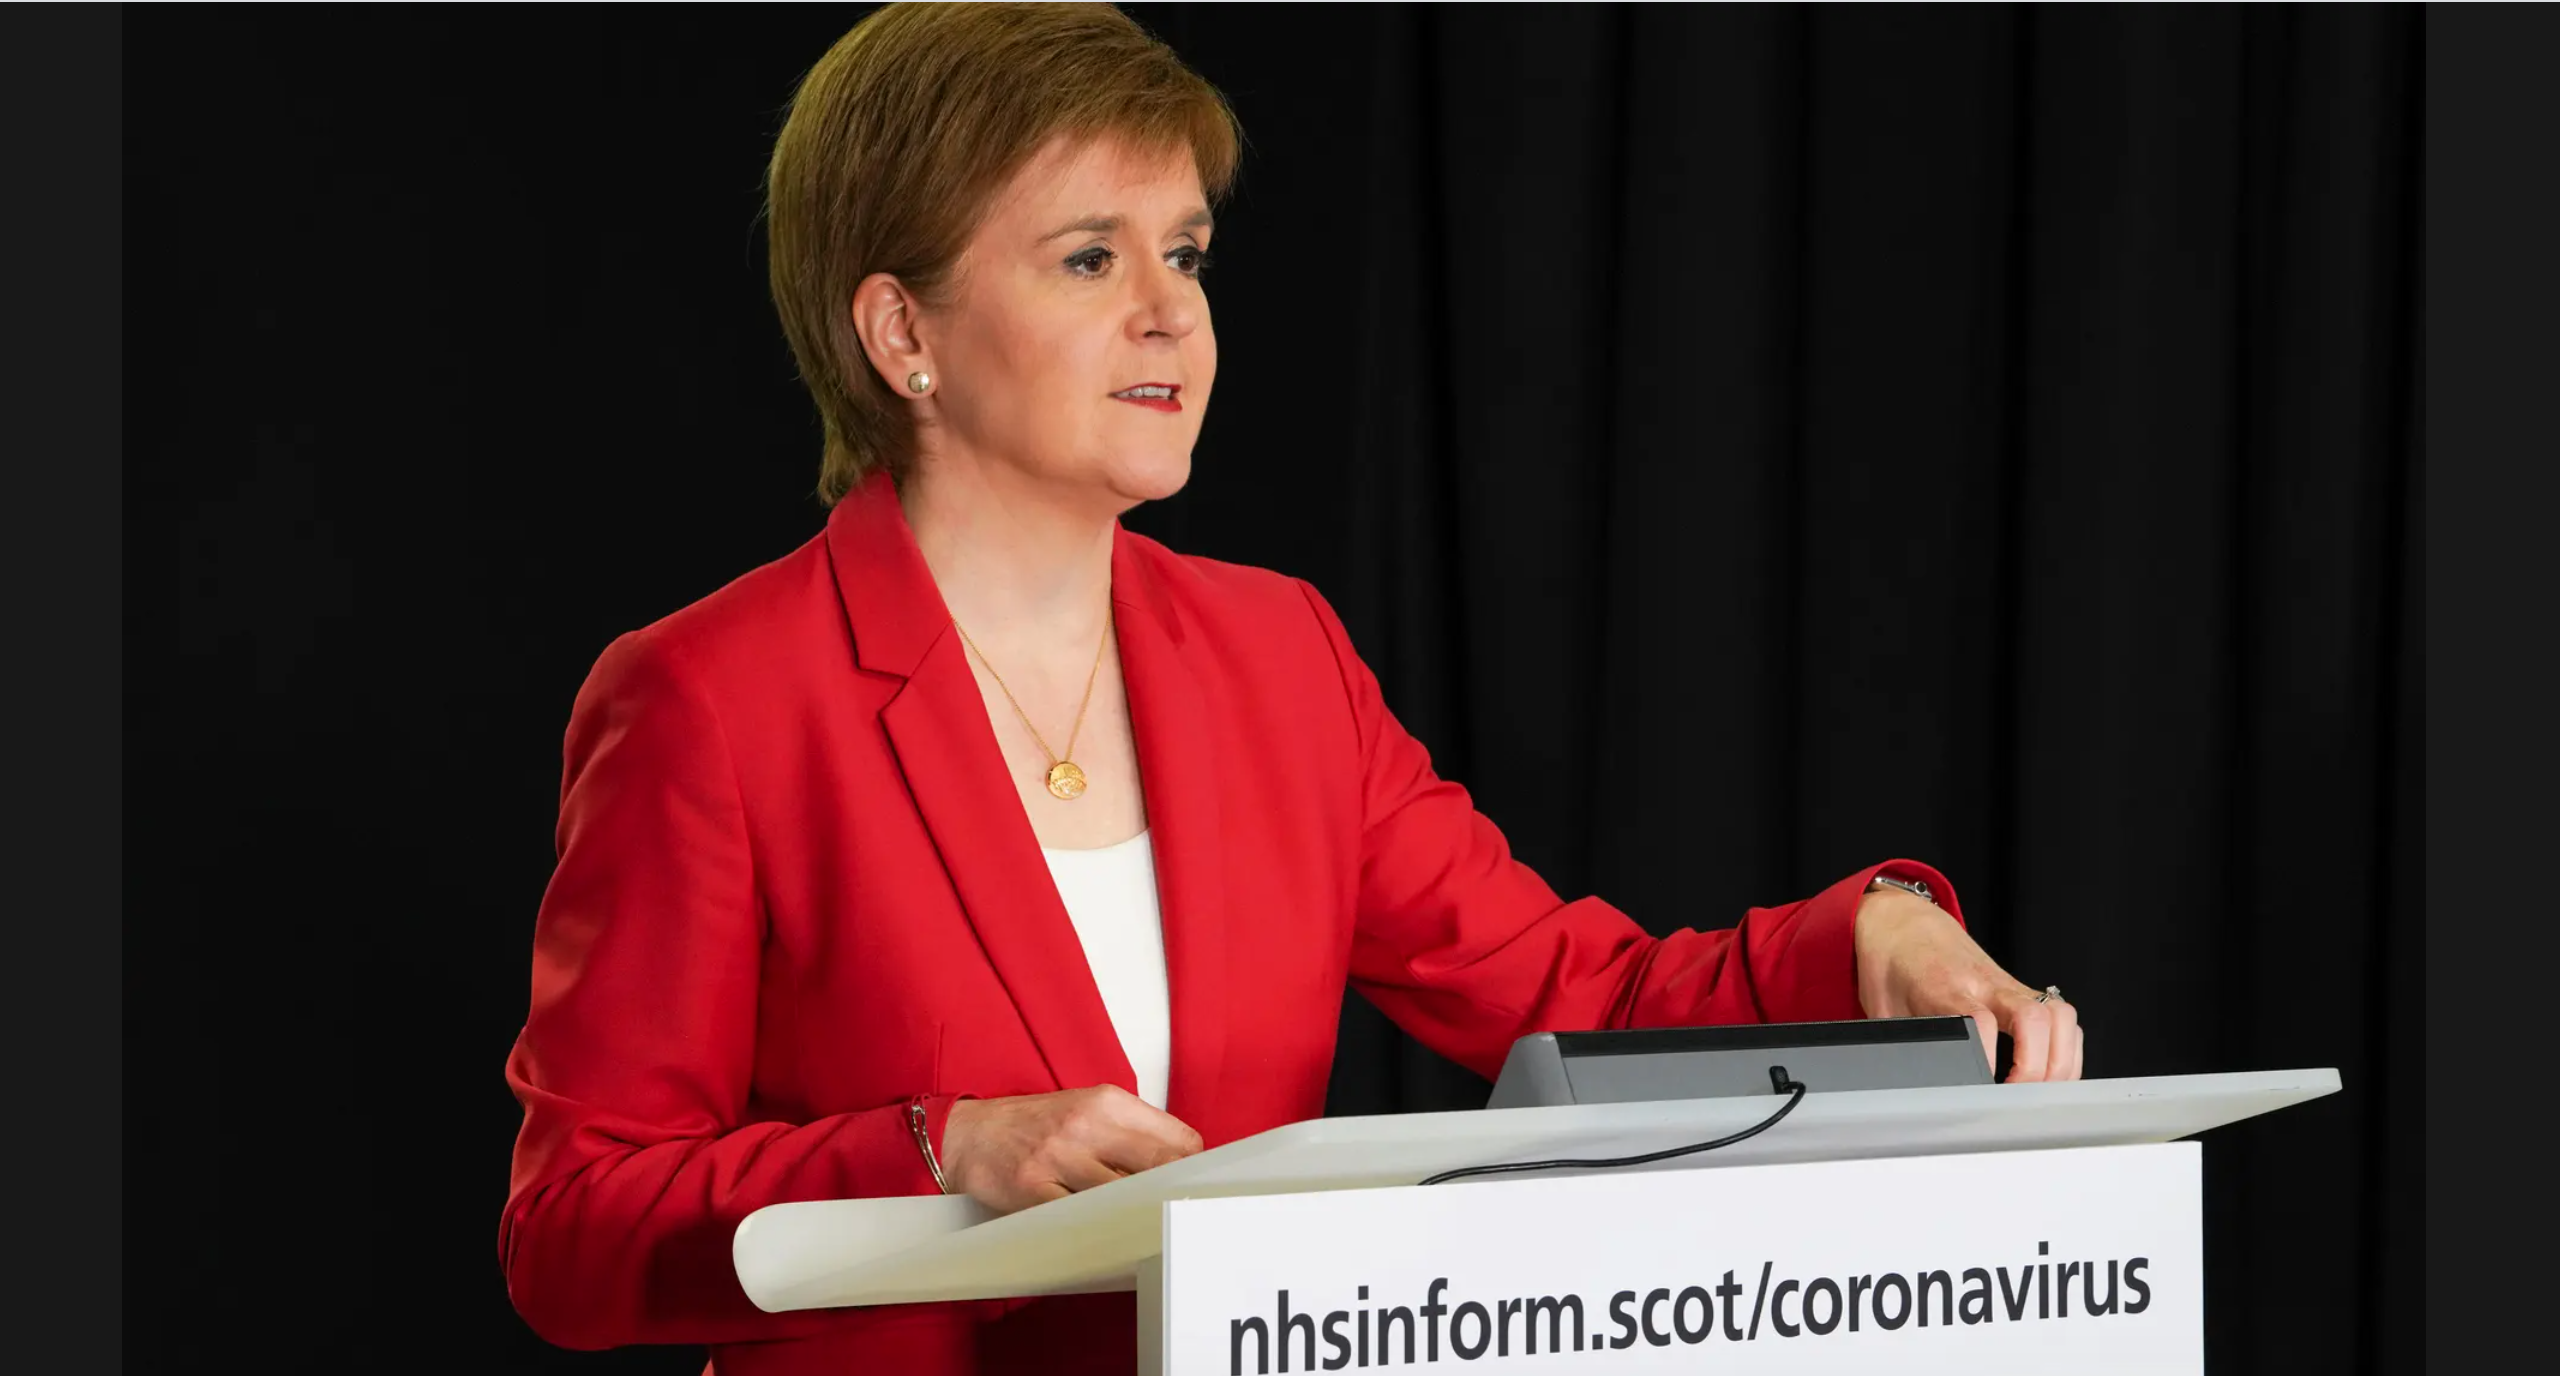 Above: Scotland's First Minister, Nicola Sturgeon has suggested a re-opening of non-essential shops in Scotland could be soon on the cards.